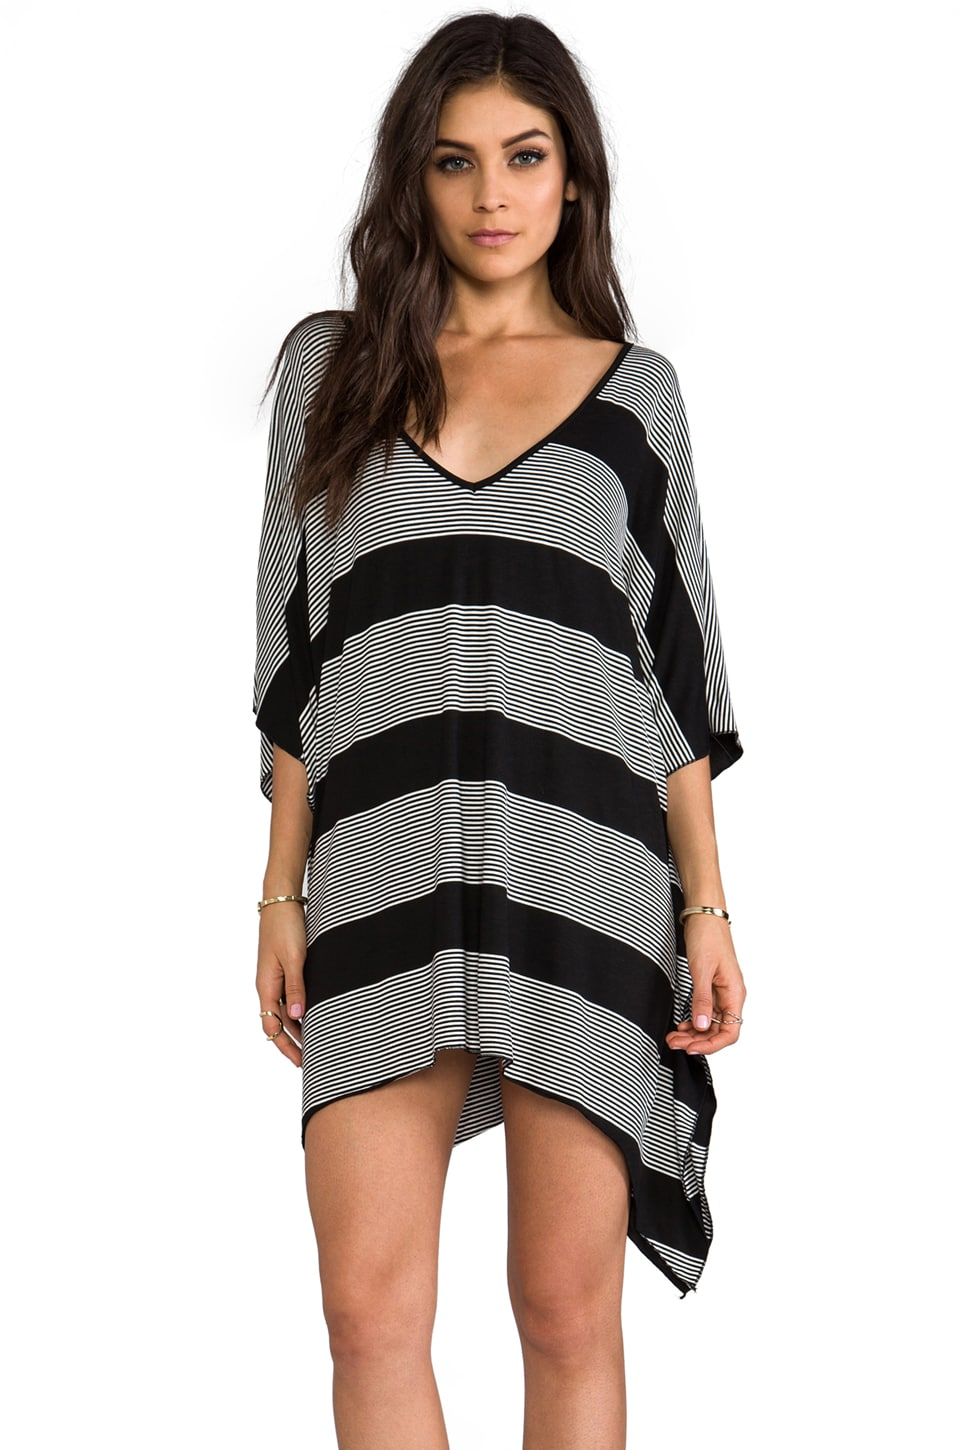 Blue Life V-Neck Cape Cool Dress in Black & White Stripe